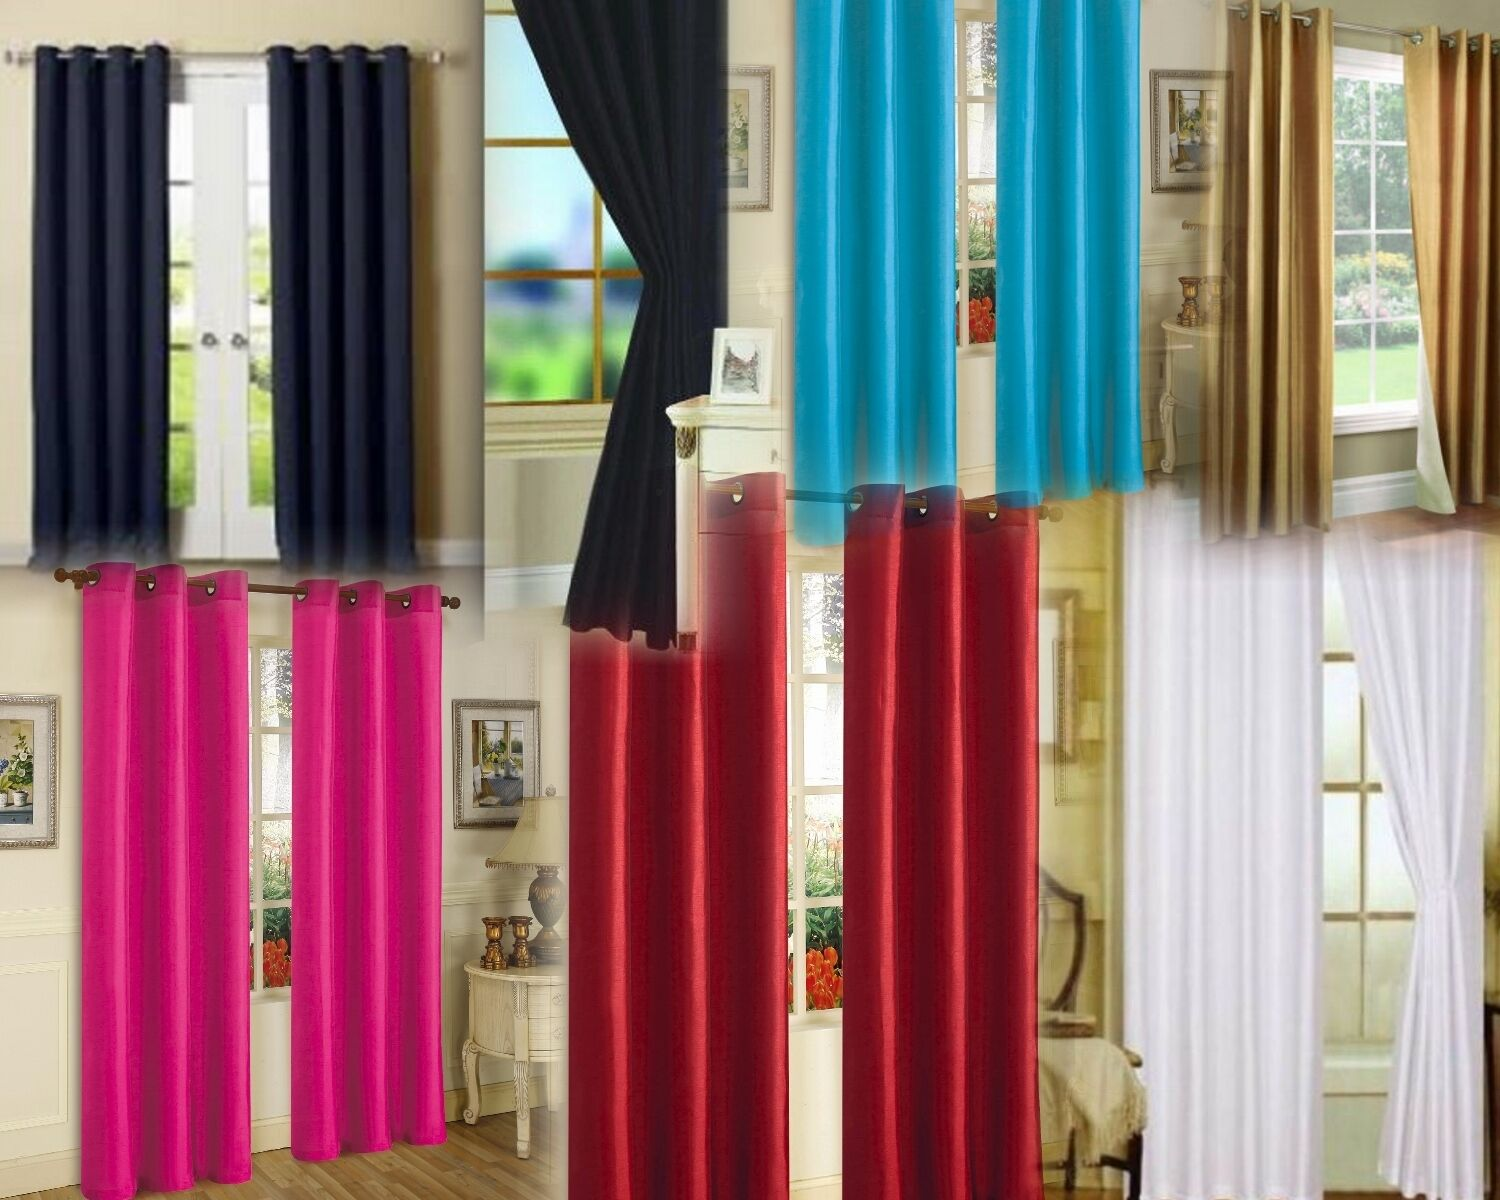 2 GROMMET PANEL TEXTURE WINDOW CURTAINS  FOAM LINED 99% BLAC